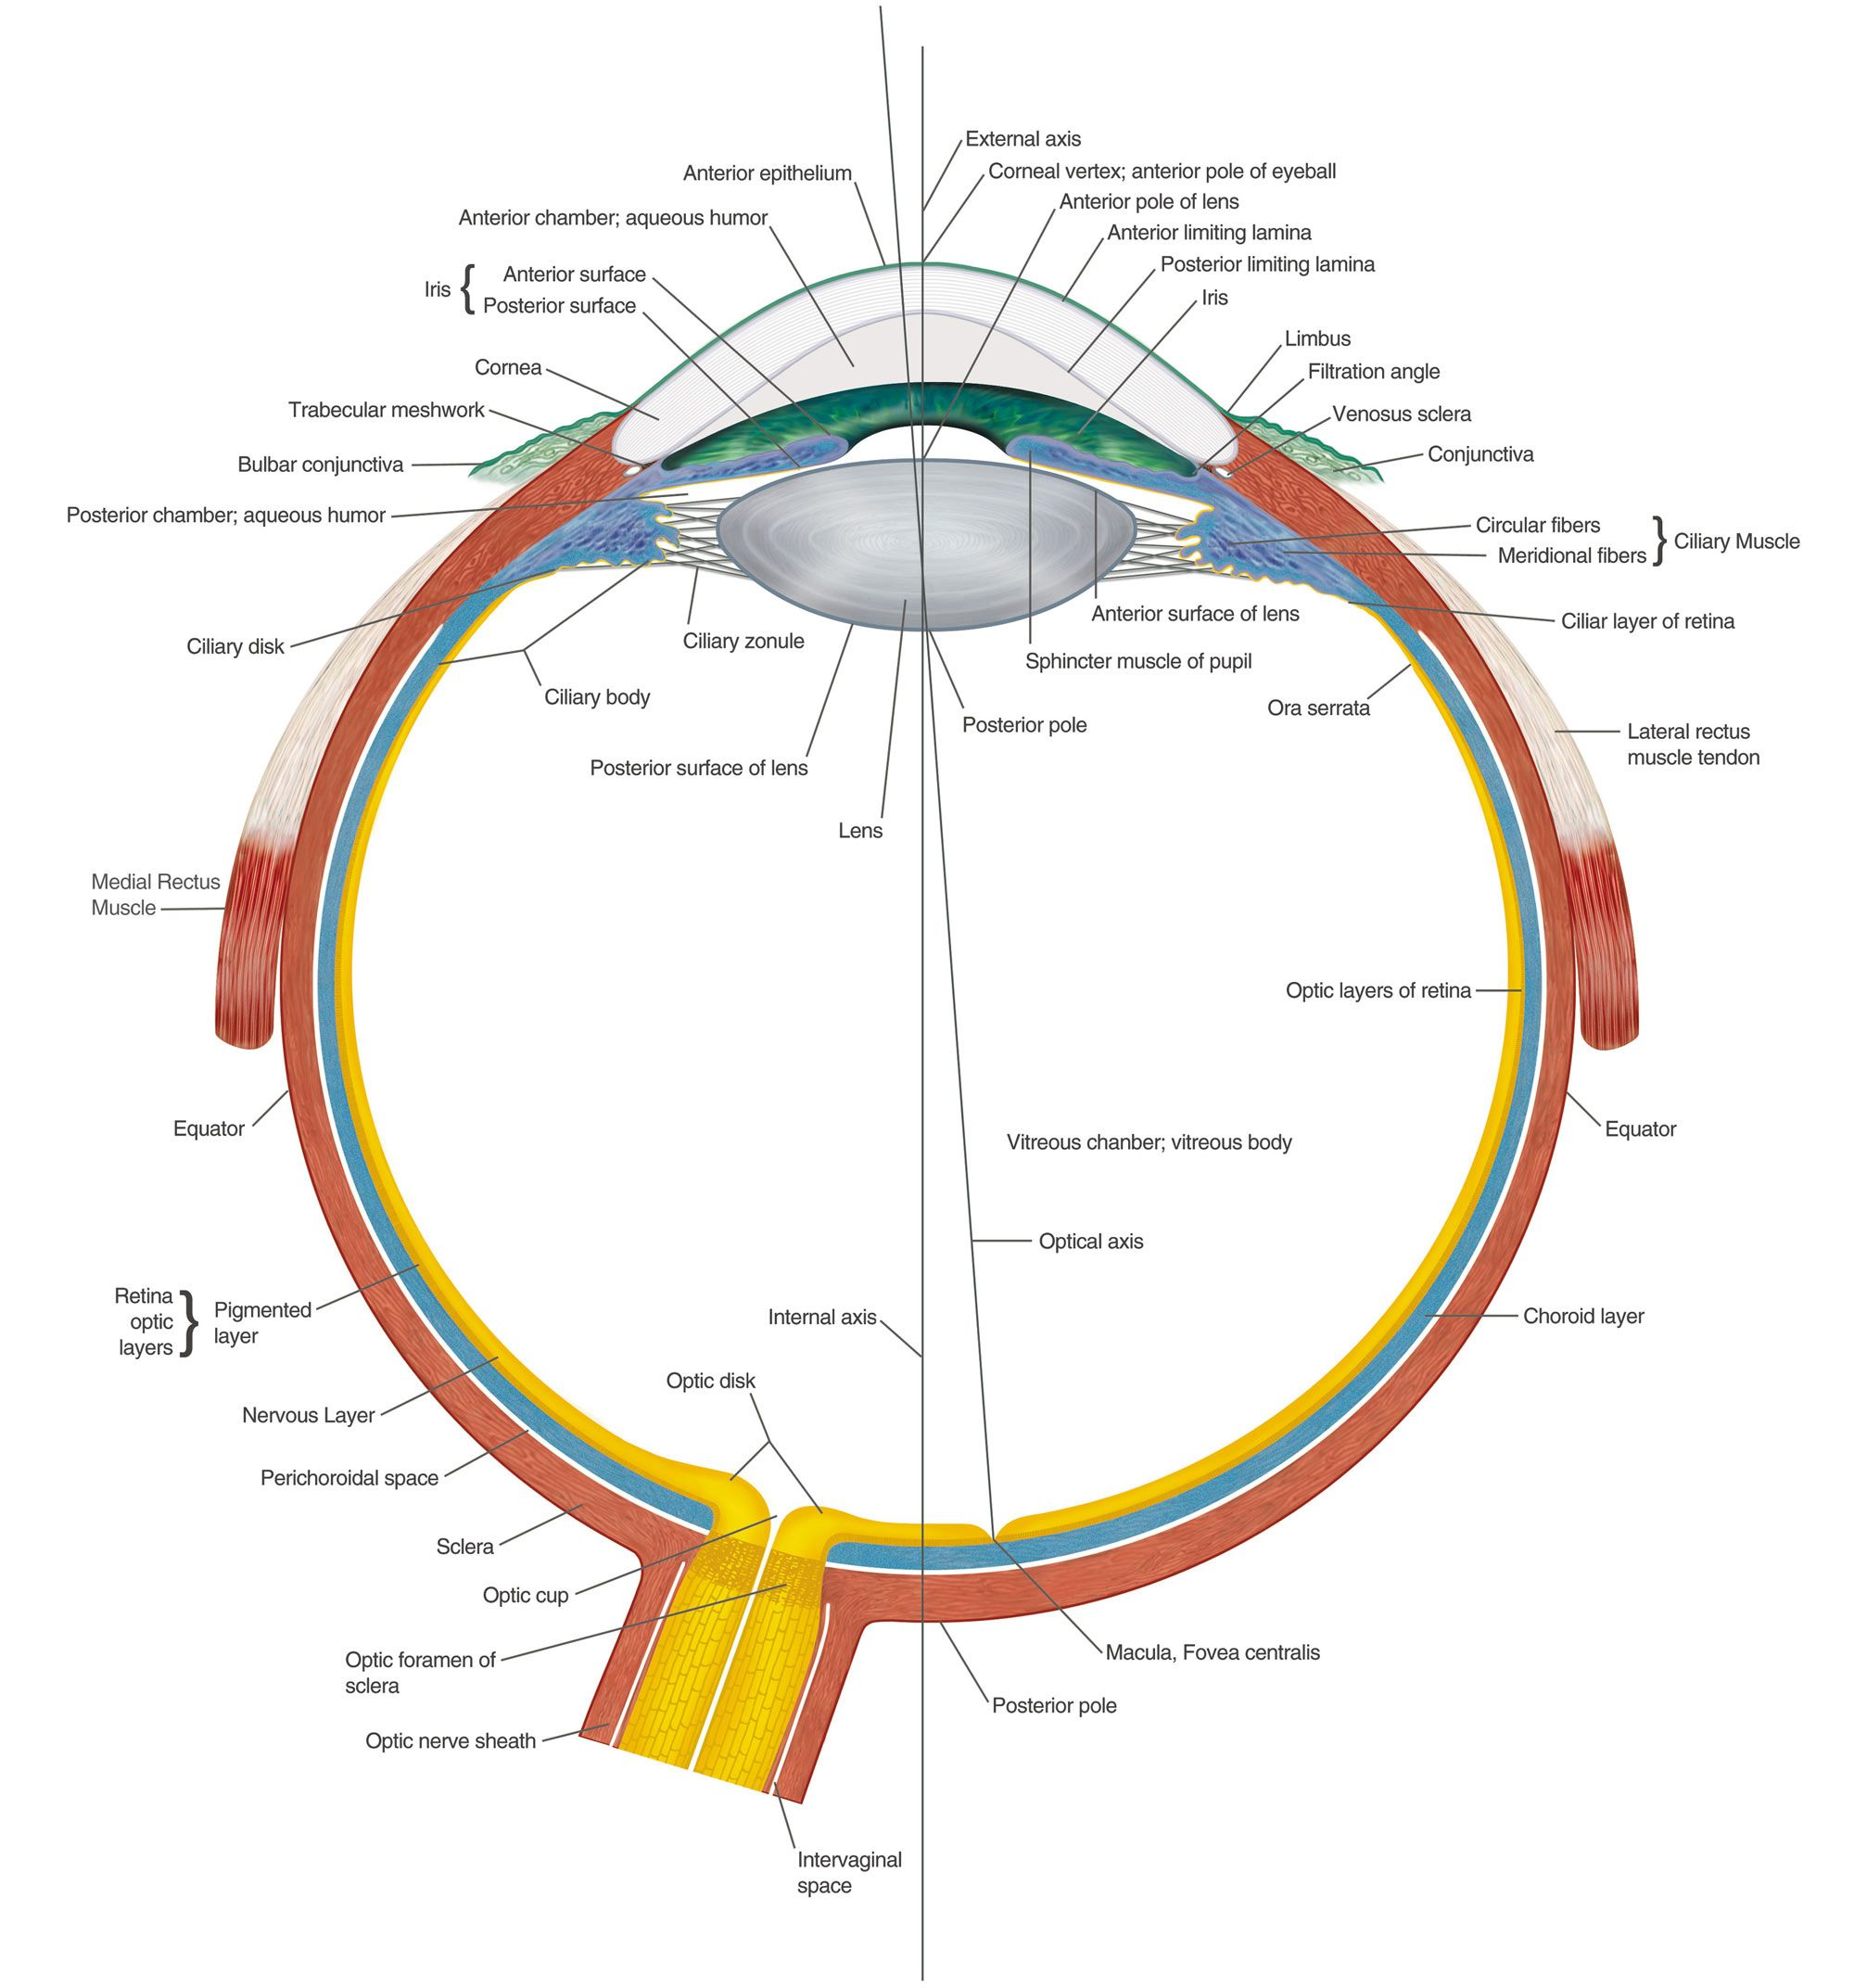 Eye Anatomy Chart B | Med | Pinterest | Eye anatomy, Anatomy and Eye